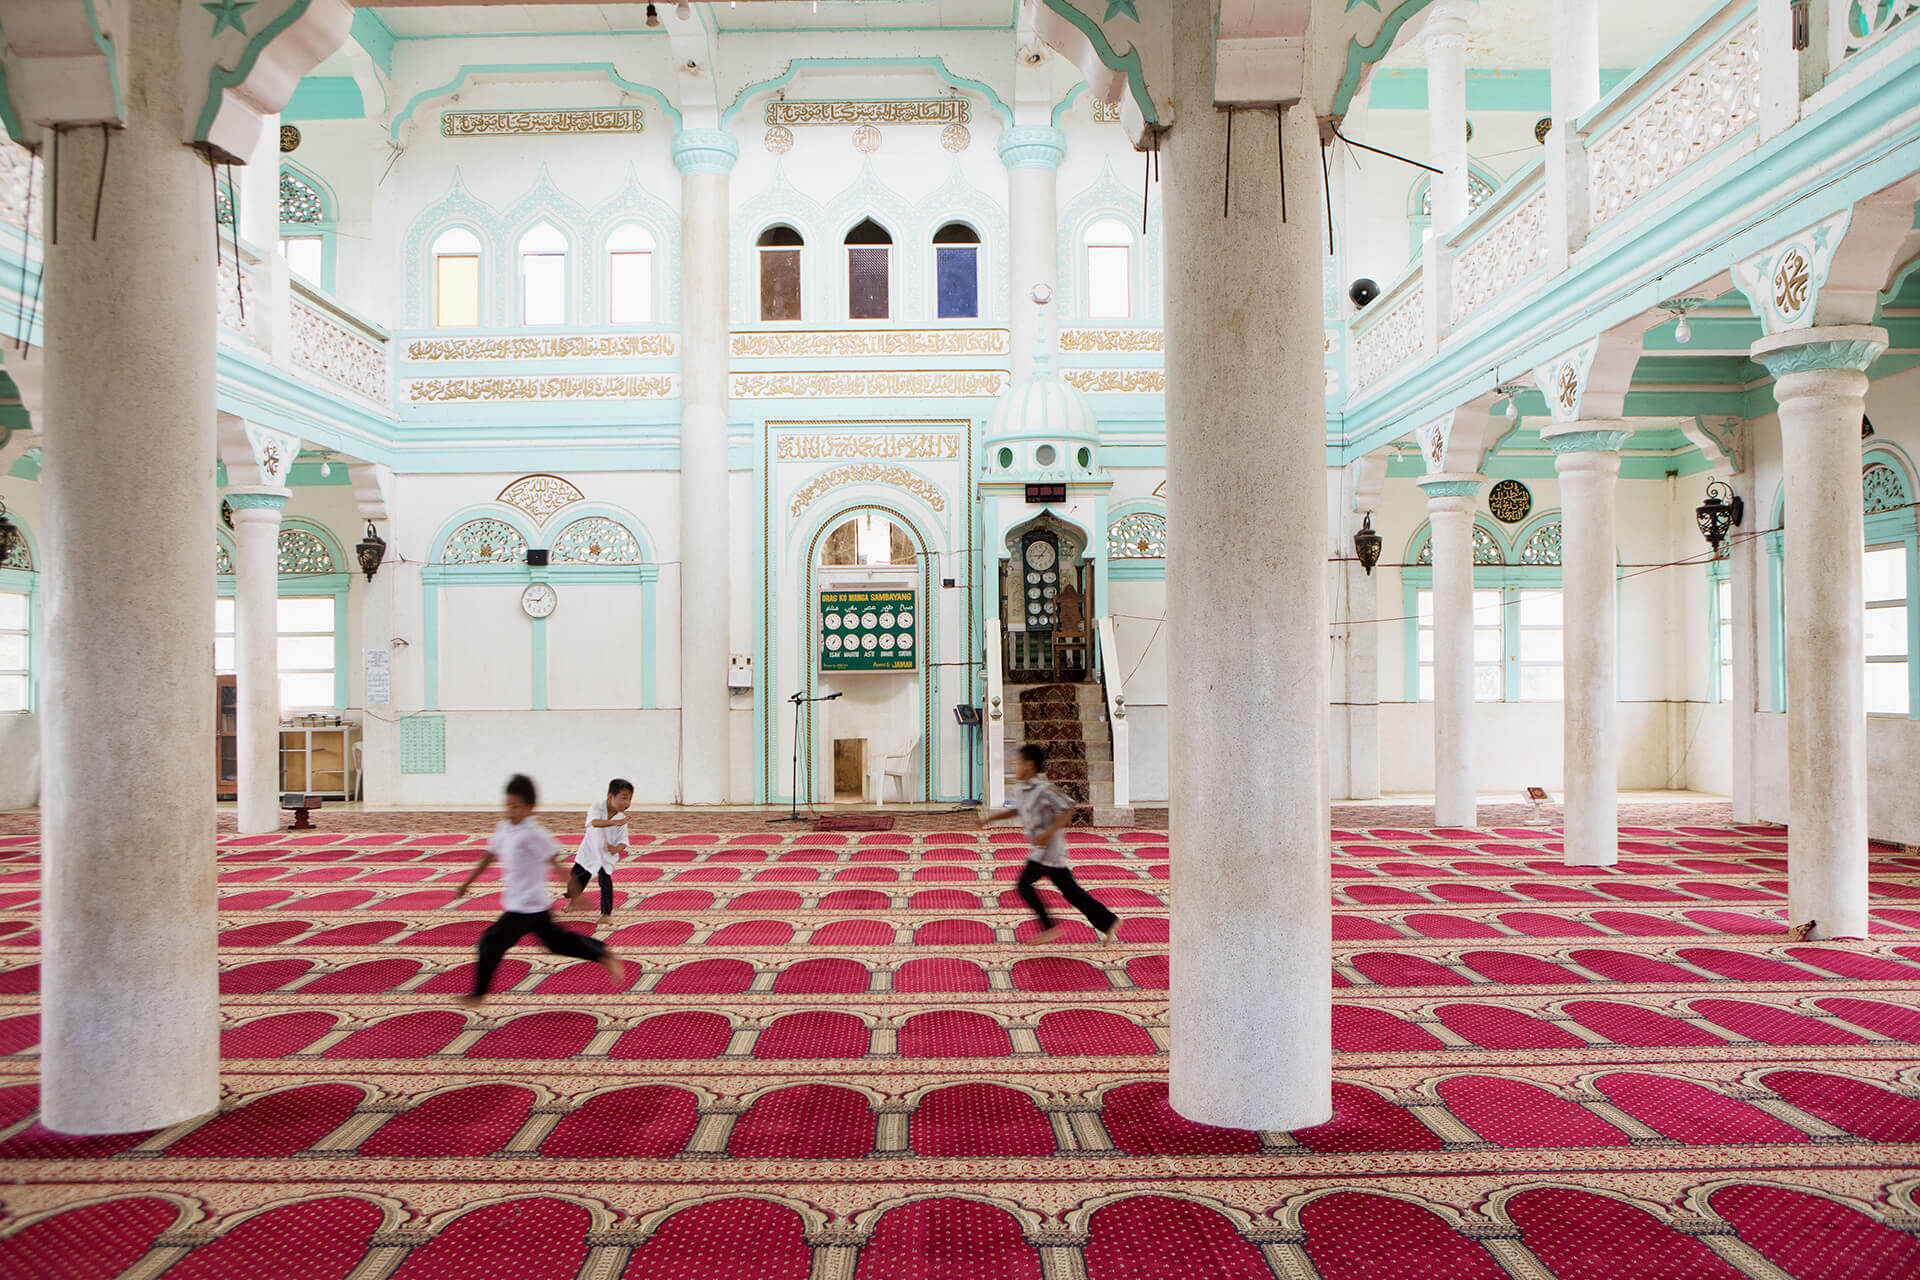 Children play in an empty mosque in Lanao del Sur, photo by Miguel Nacianceno